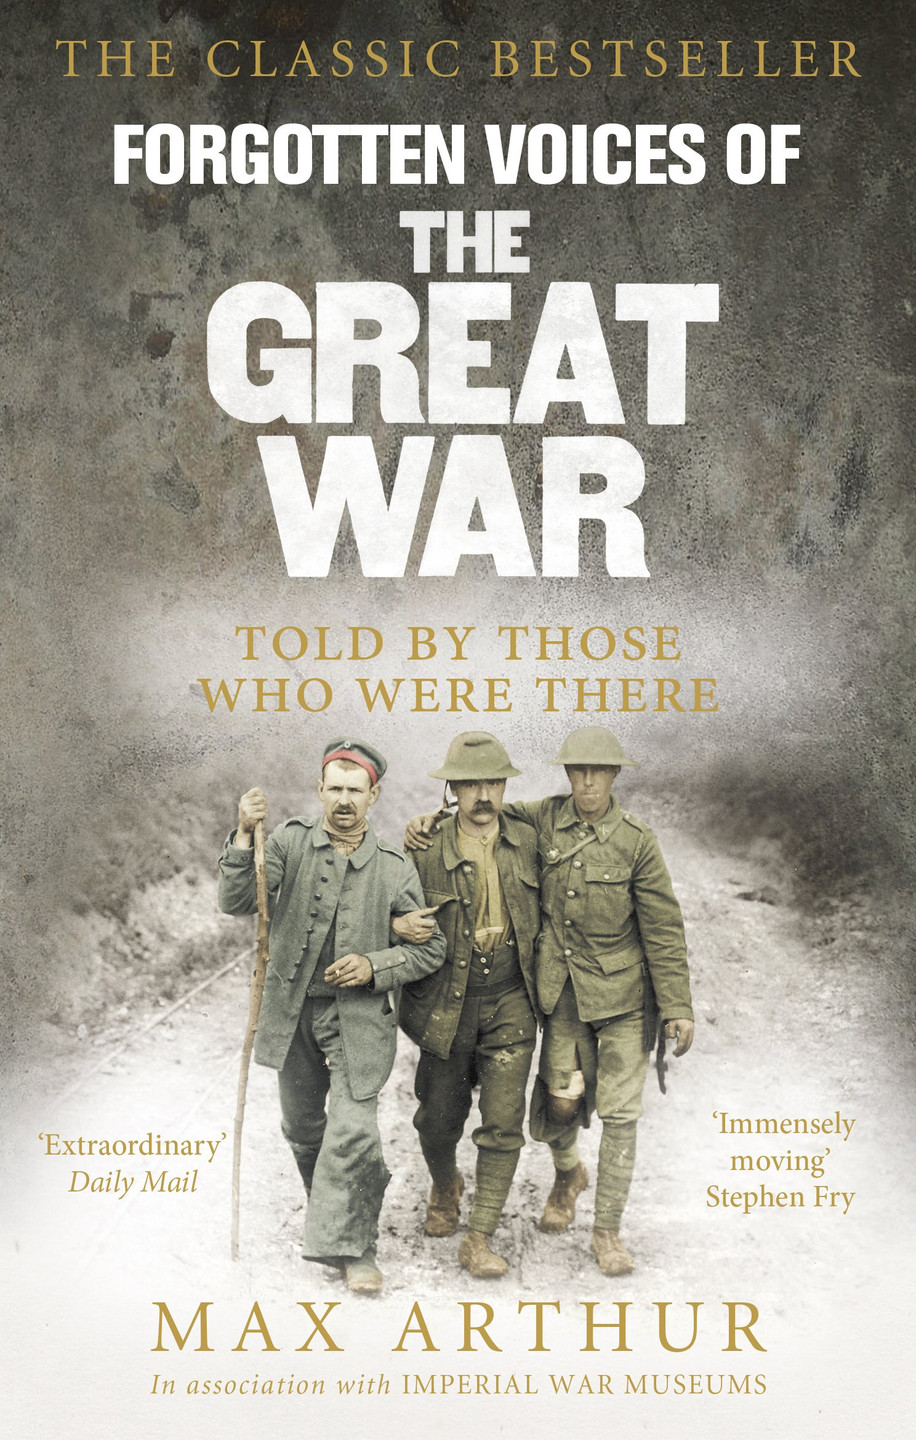 Forgotten Voices of The Great War by Max Arthur, paperback book at book depository